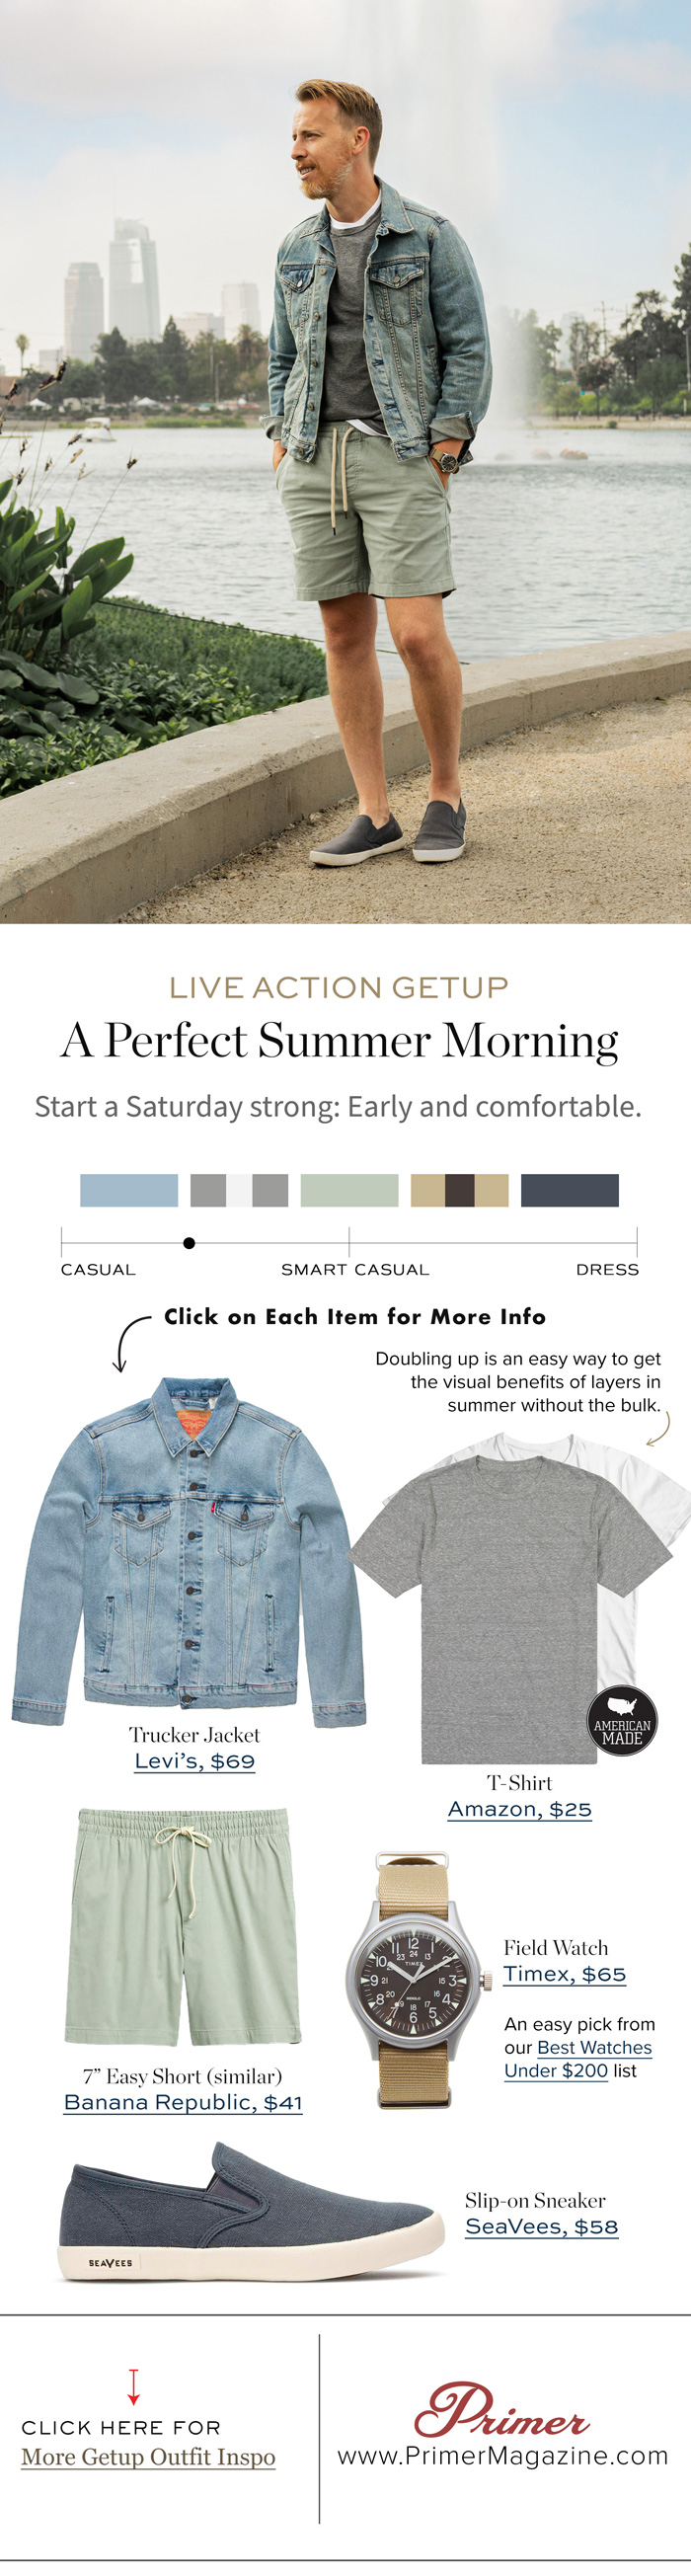 Live Action Getup - A perfect summer morning - men's outfit inspiration collage